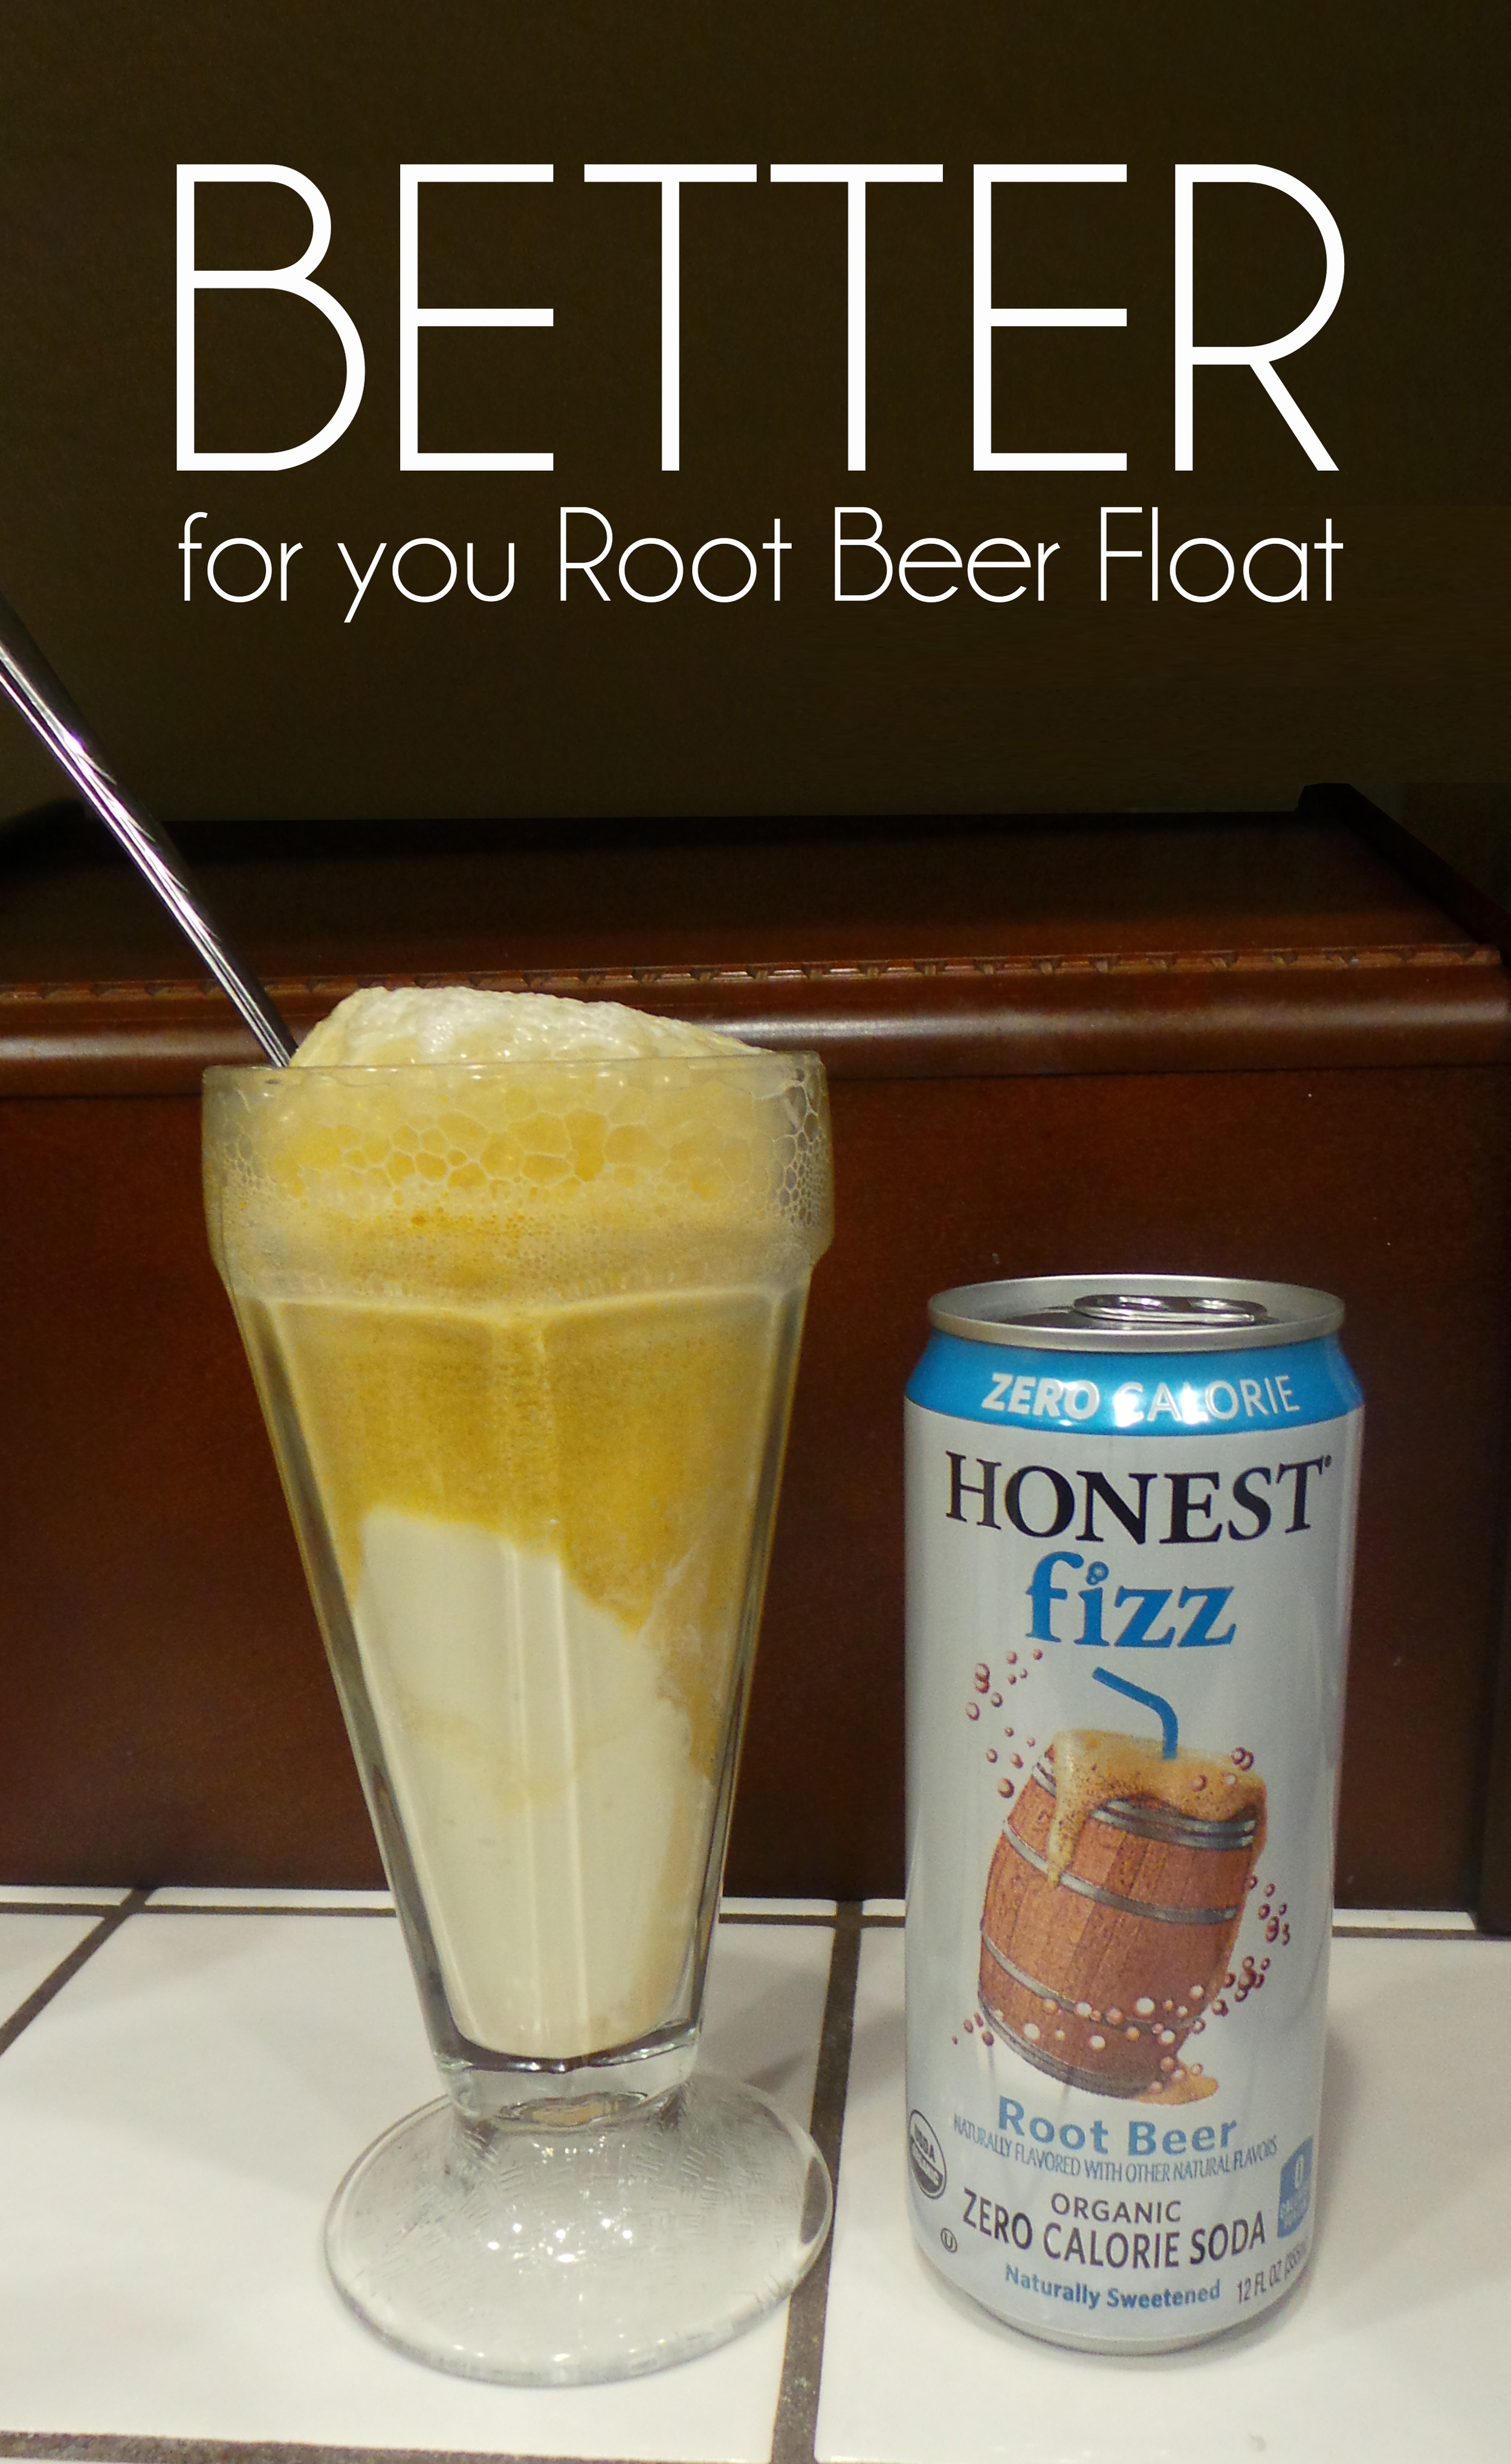 Better for you Root Beer Float